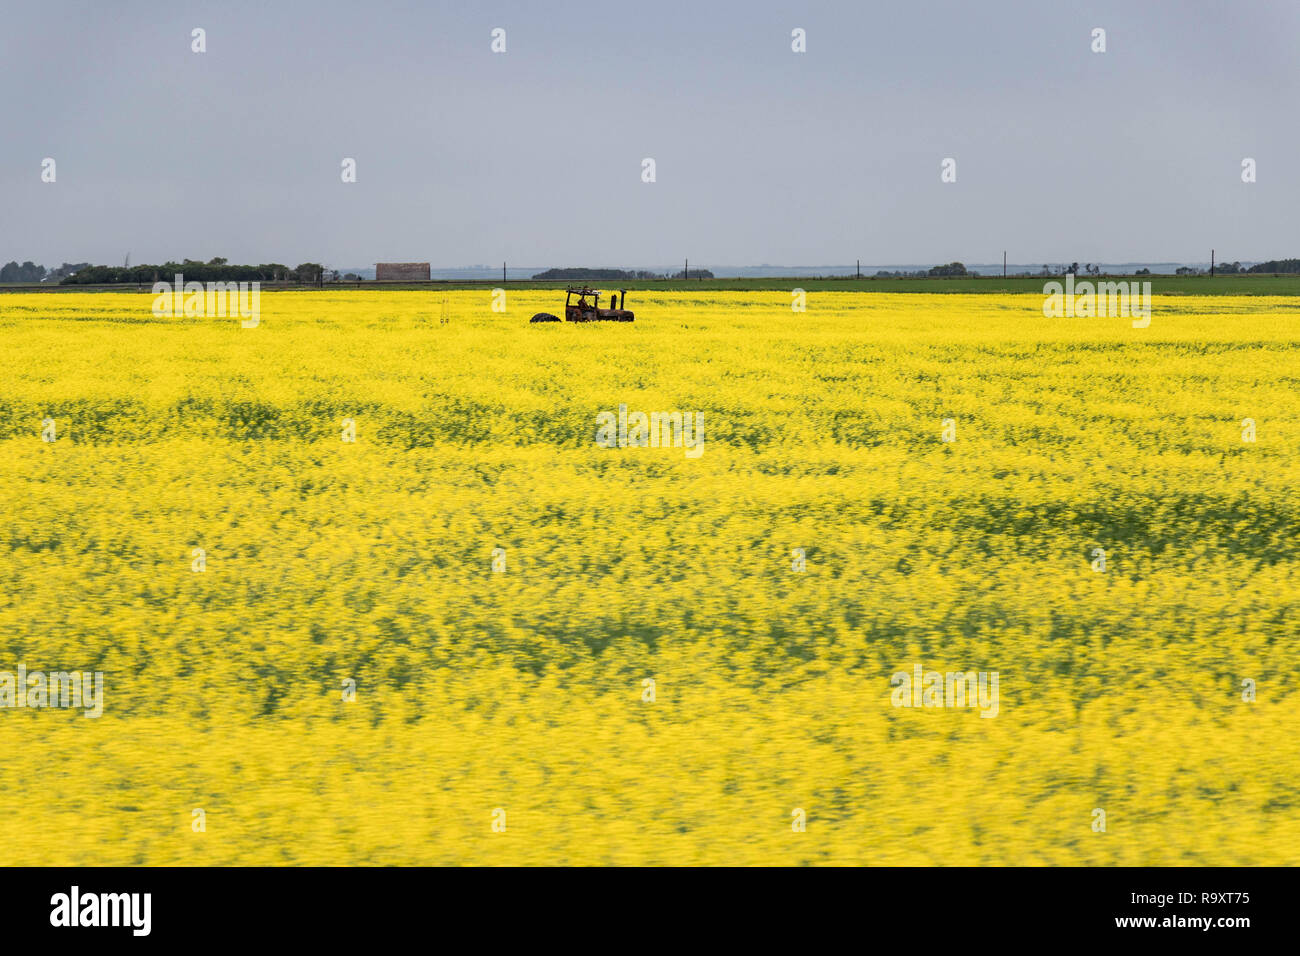 rusted-tractor-abandoned-in-a-canola-field-manitoba-canada-R9XT75.jpg